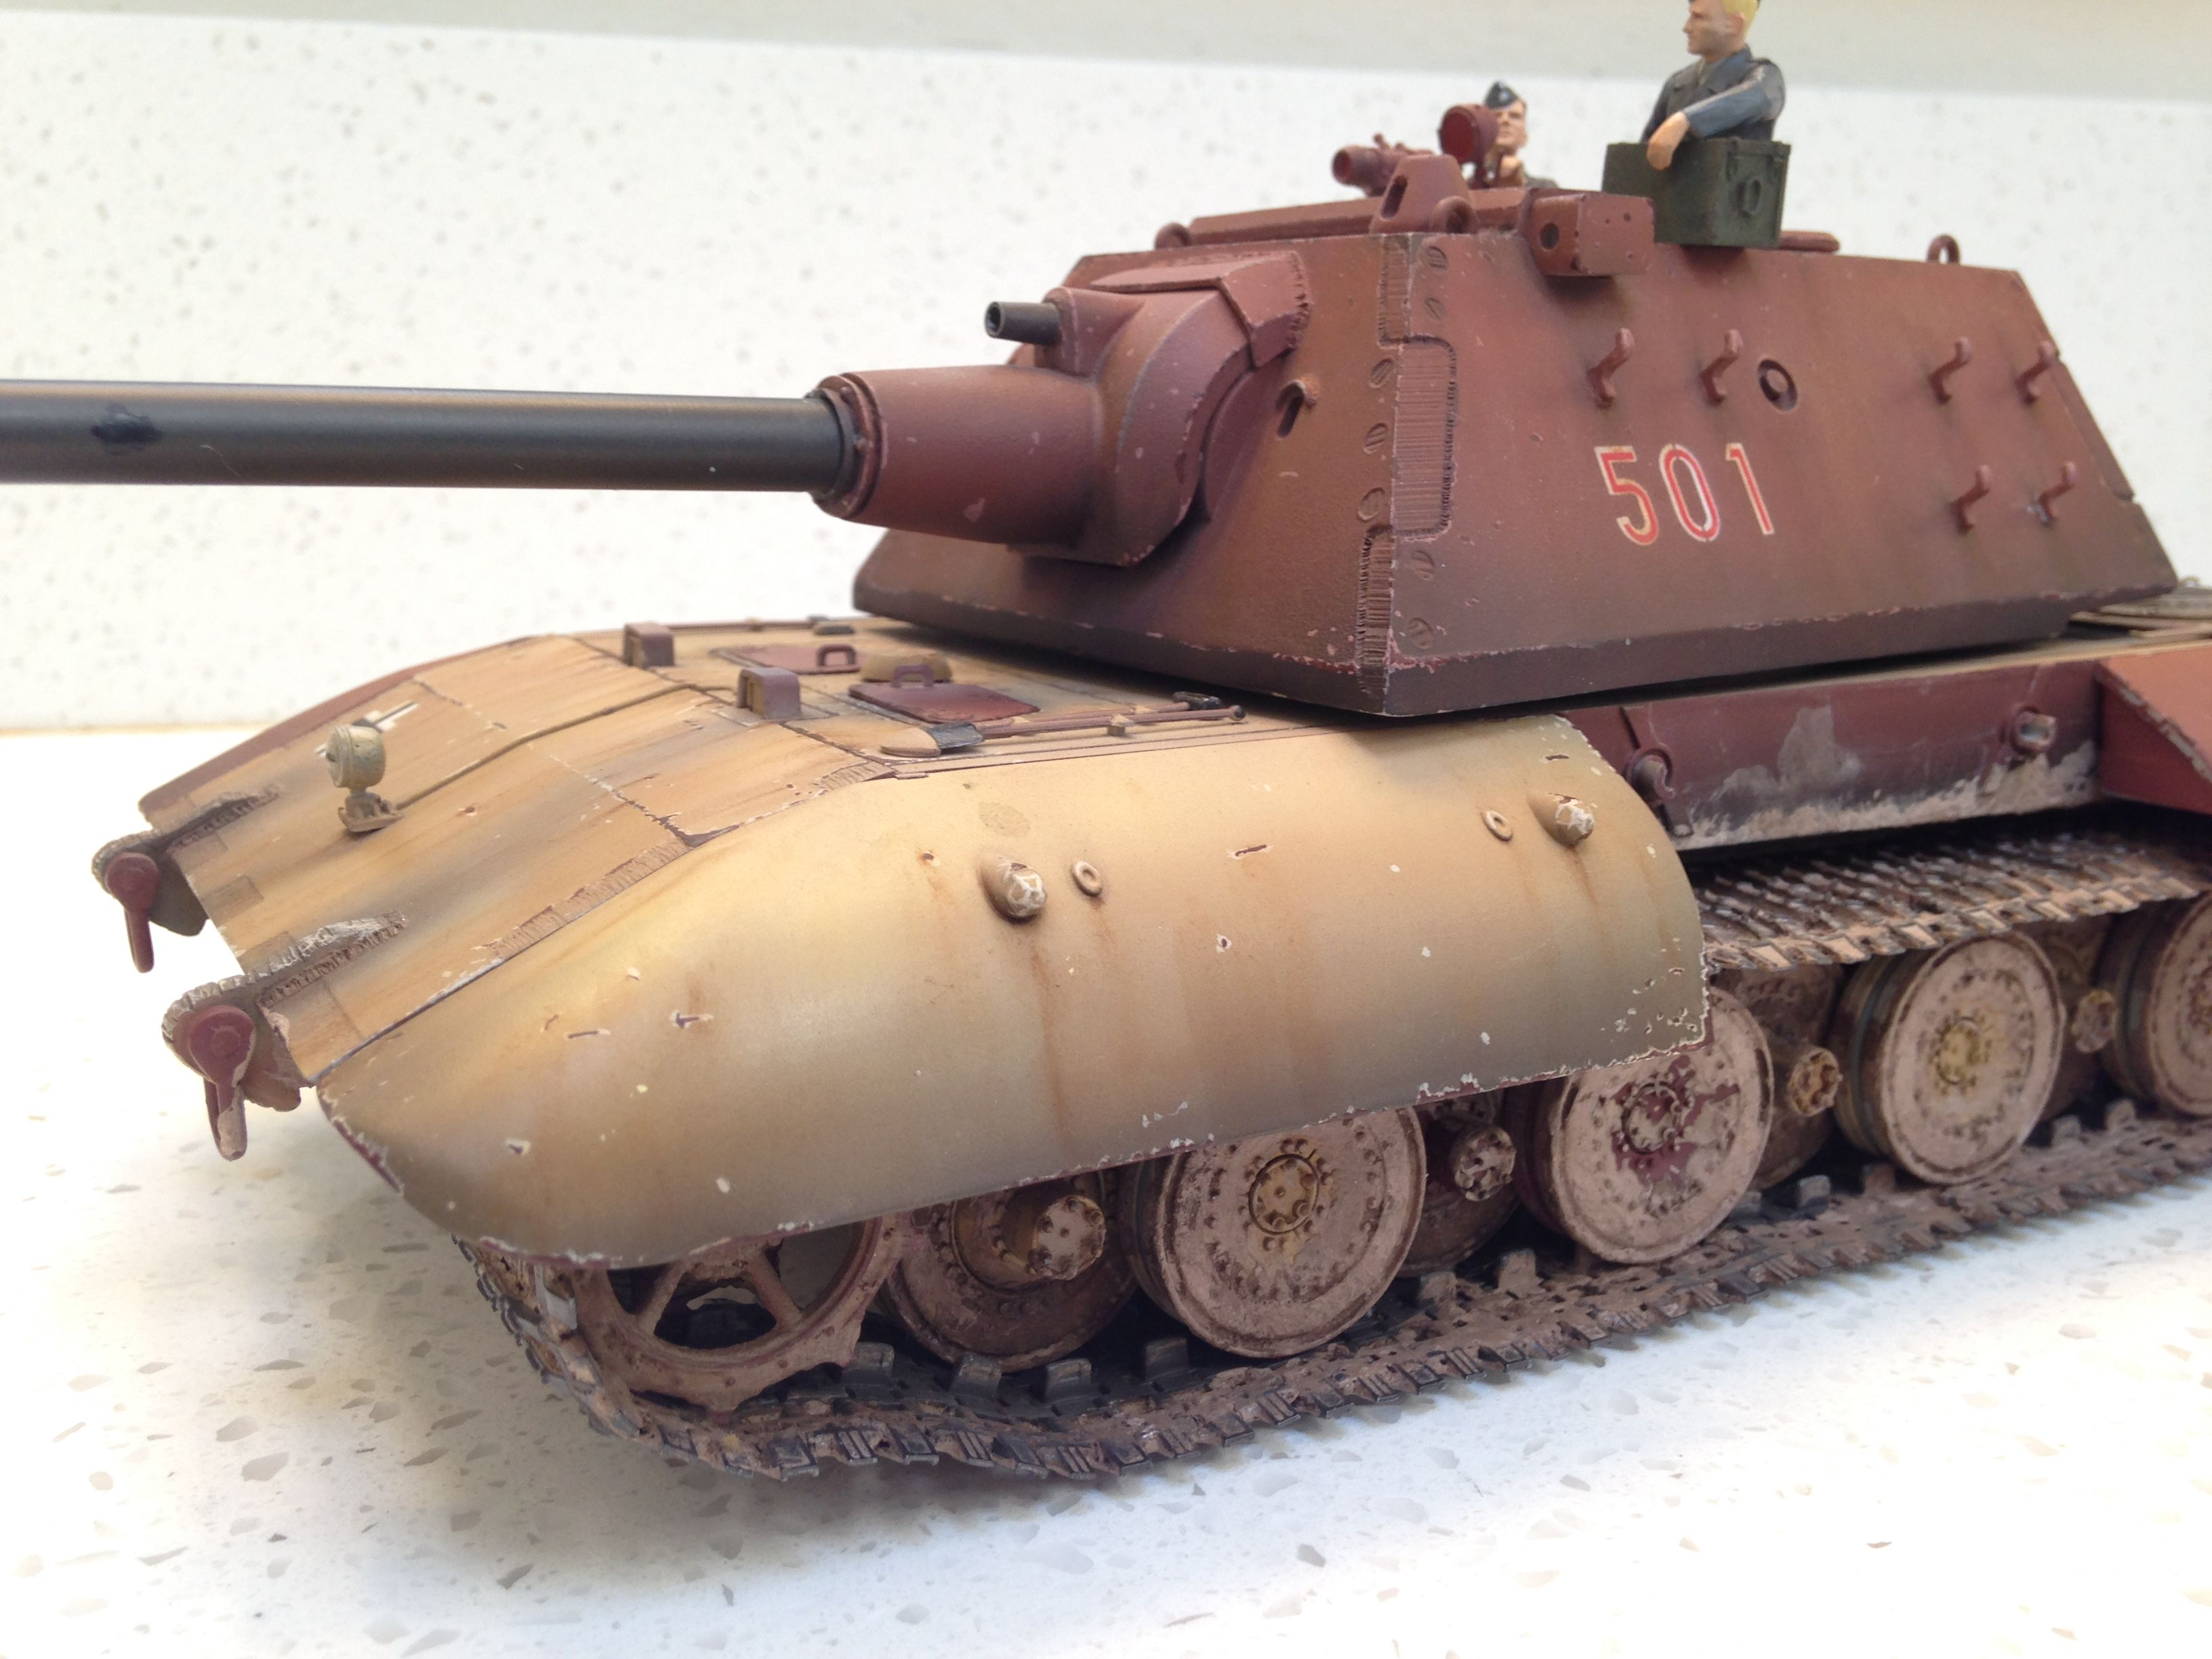 b422f03f6 For Sell now: 1/35 World of Tanks E100 Tier 10 Heavy Tank. Want view more?  Please visit www.xinghaotanks.weebly.com